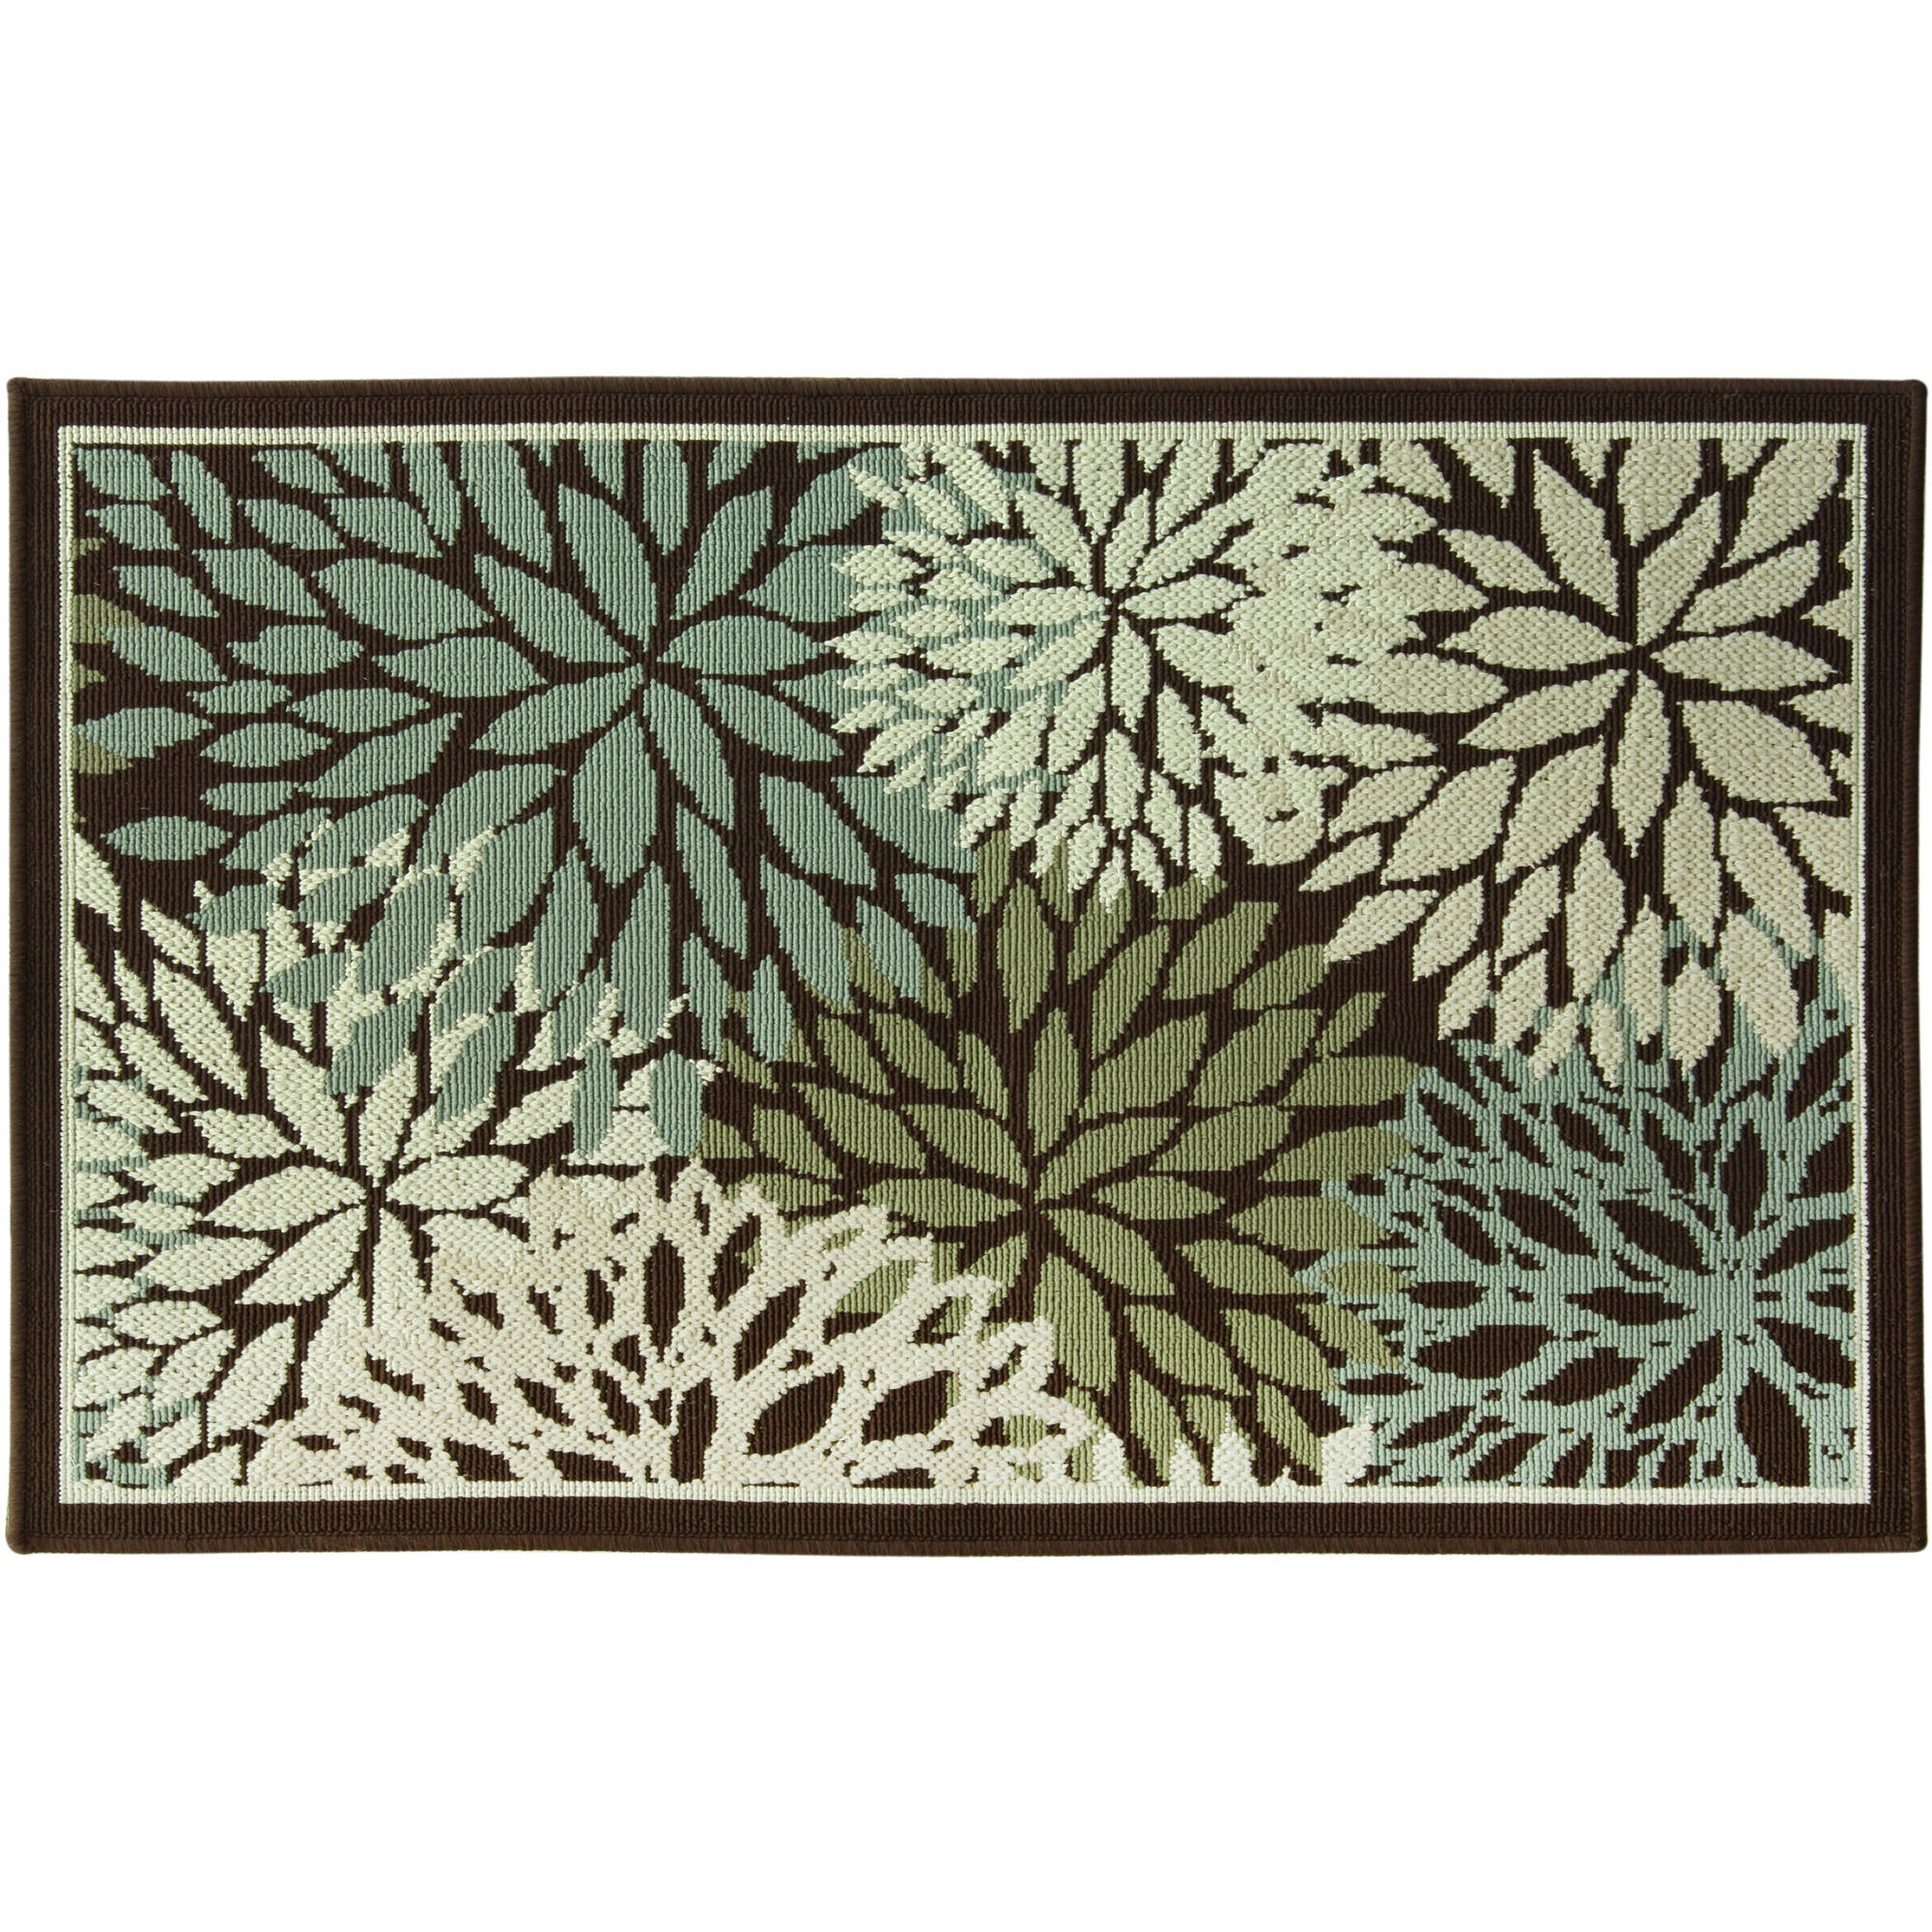 Better Homes and Gardens Mixed Floral Rug, Dark Brown by Bacova